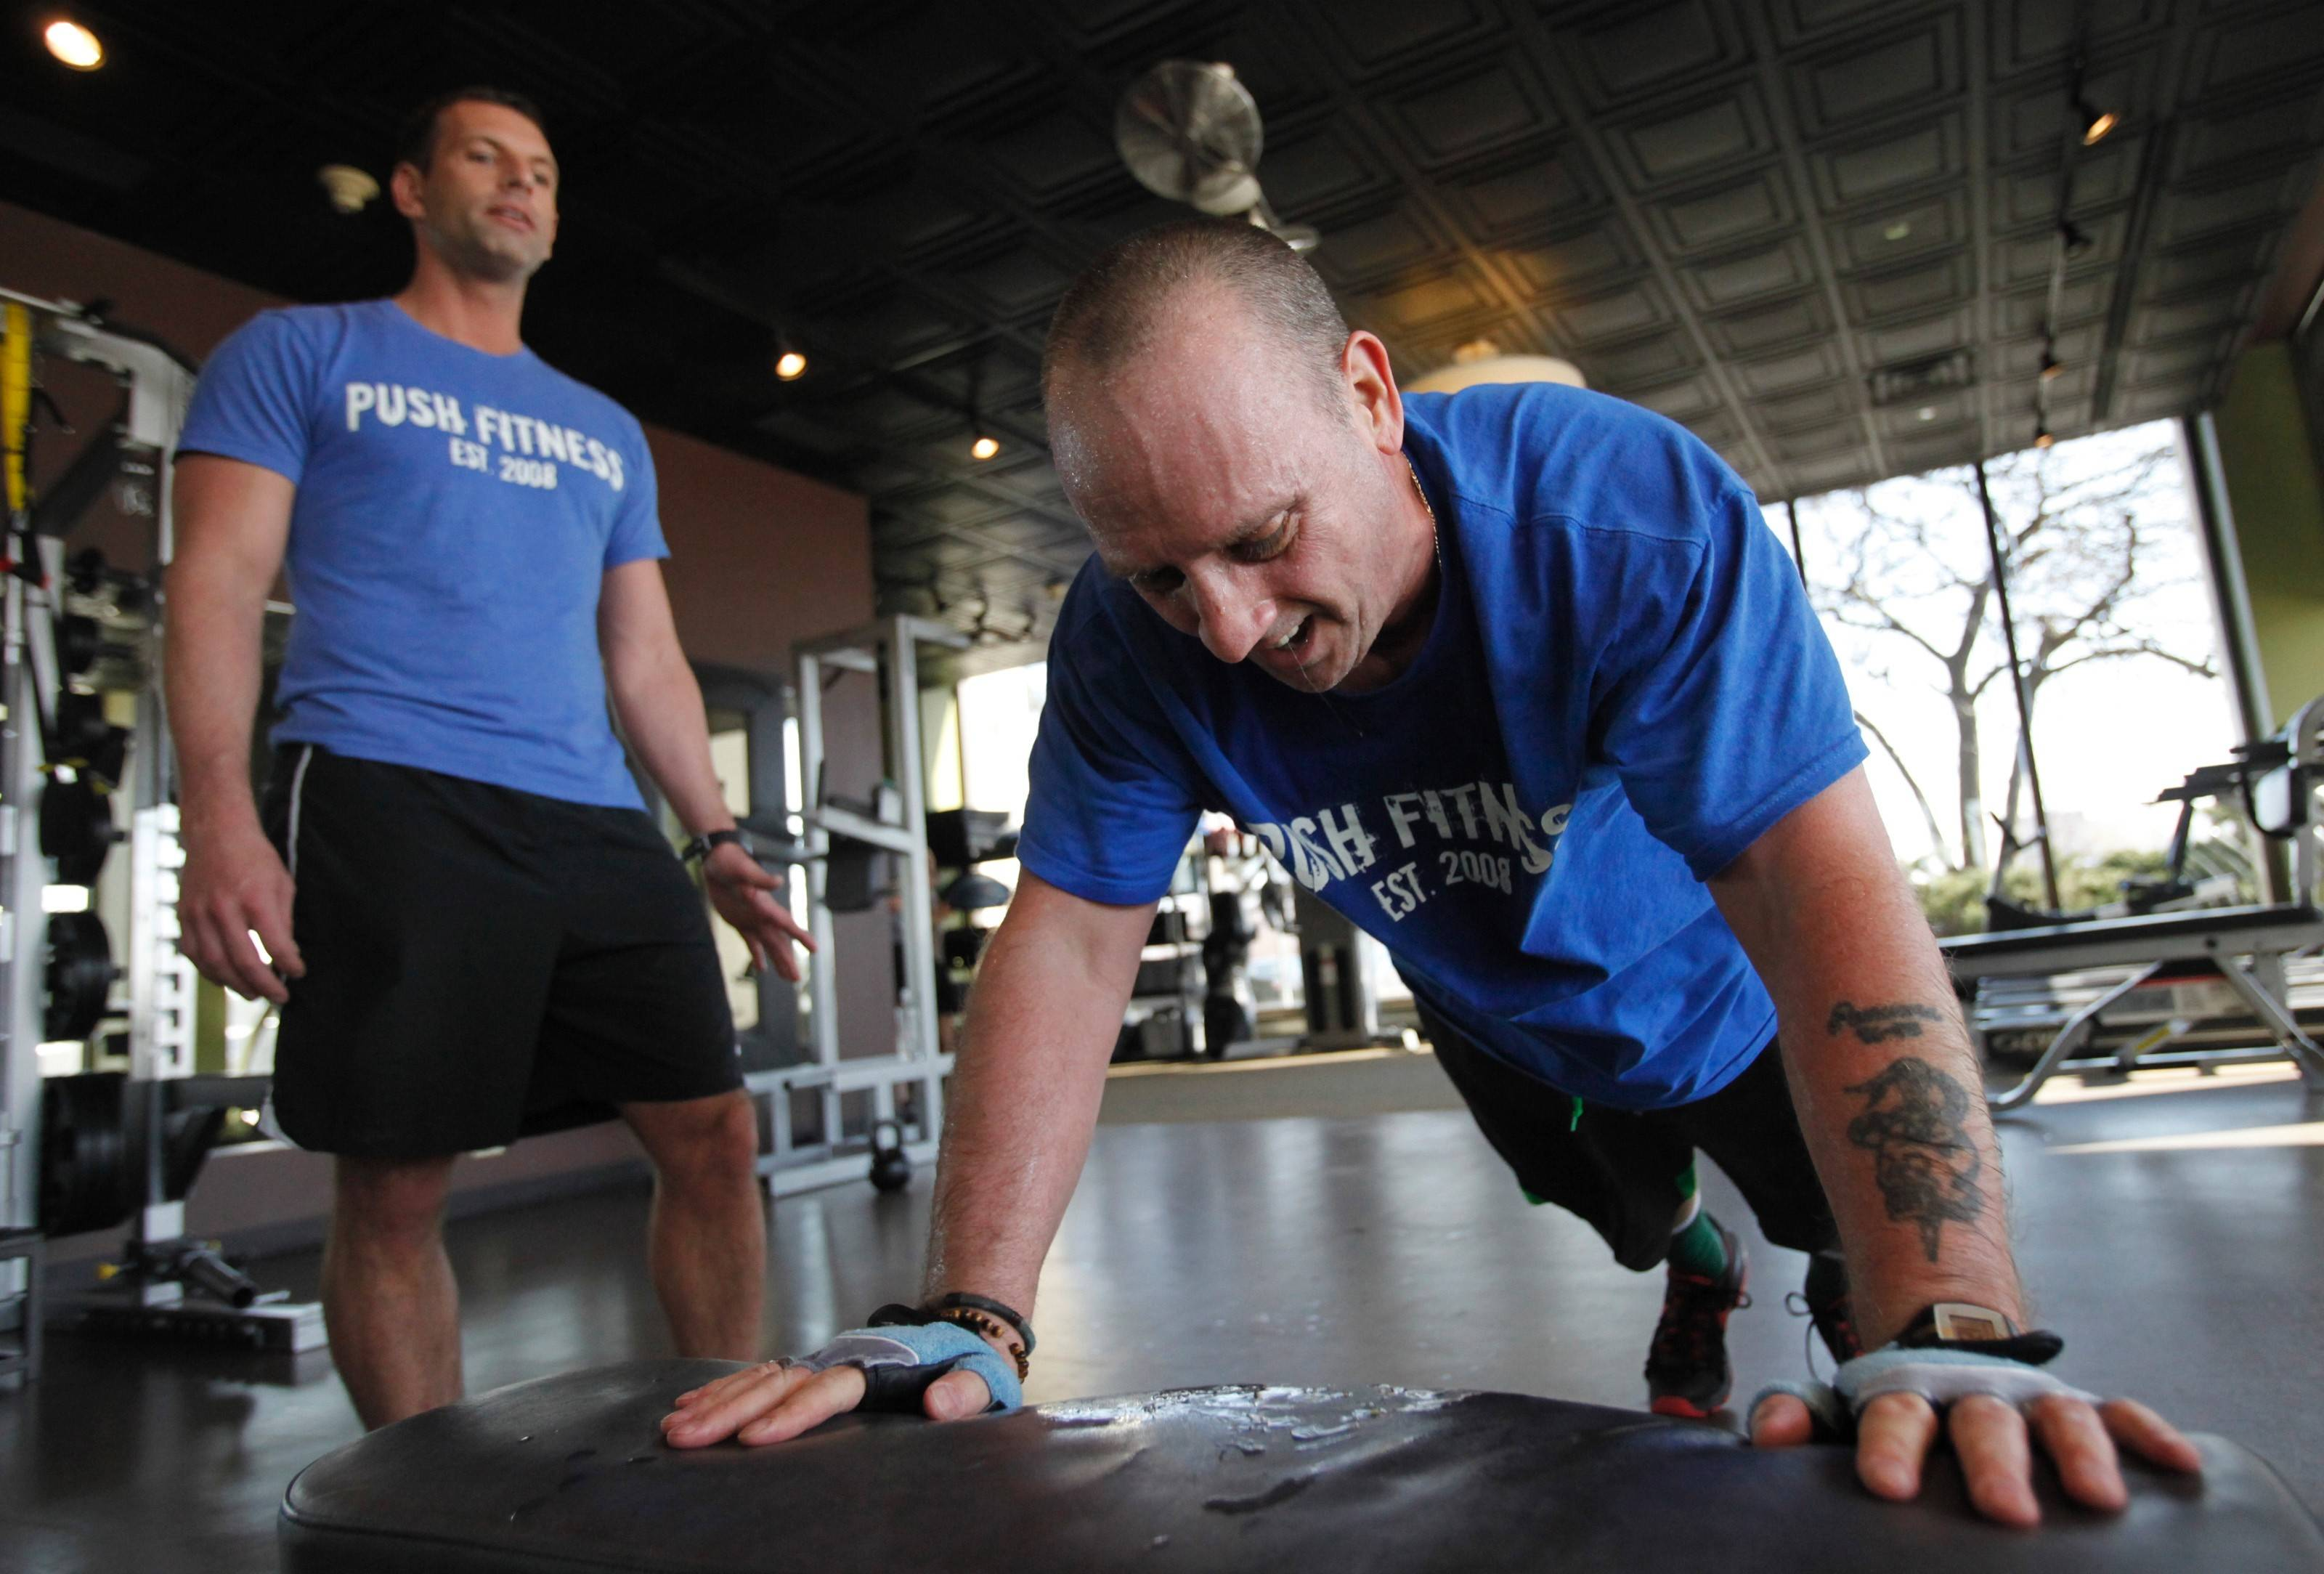 Trainer Steve Amsden makes sure Fittest Loser Tim Lange works hard in the gym.